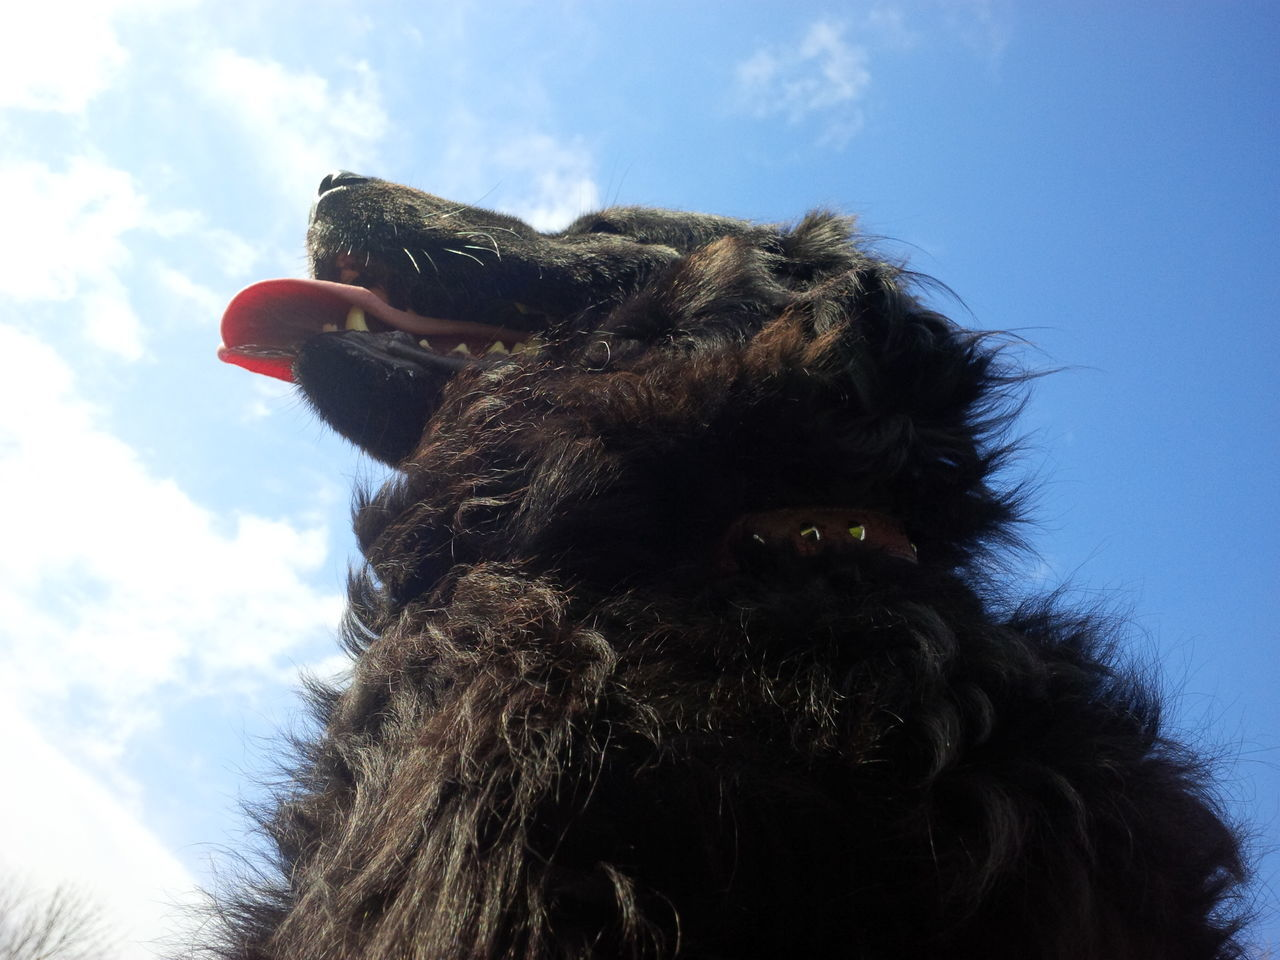 Day Sky Cloud - Sky One Animal Animal Themes Close-up Outdoors Dogs Of EyeEm Newfoundland Newfie Tounge Out  Pet Photography  Domestic Dog